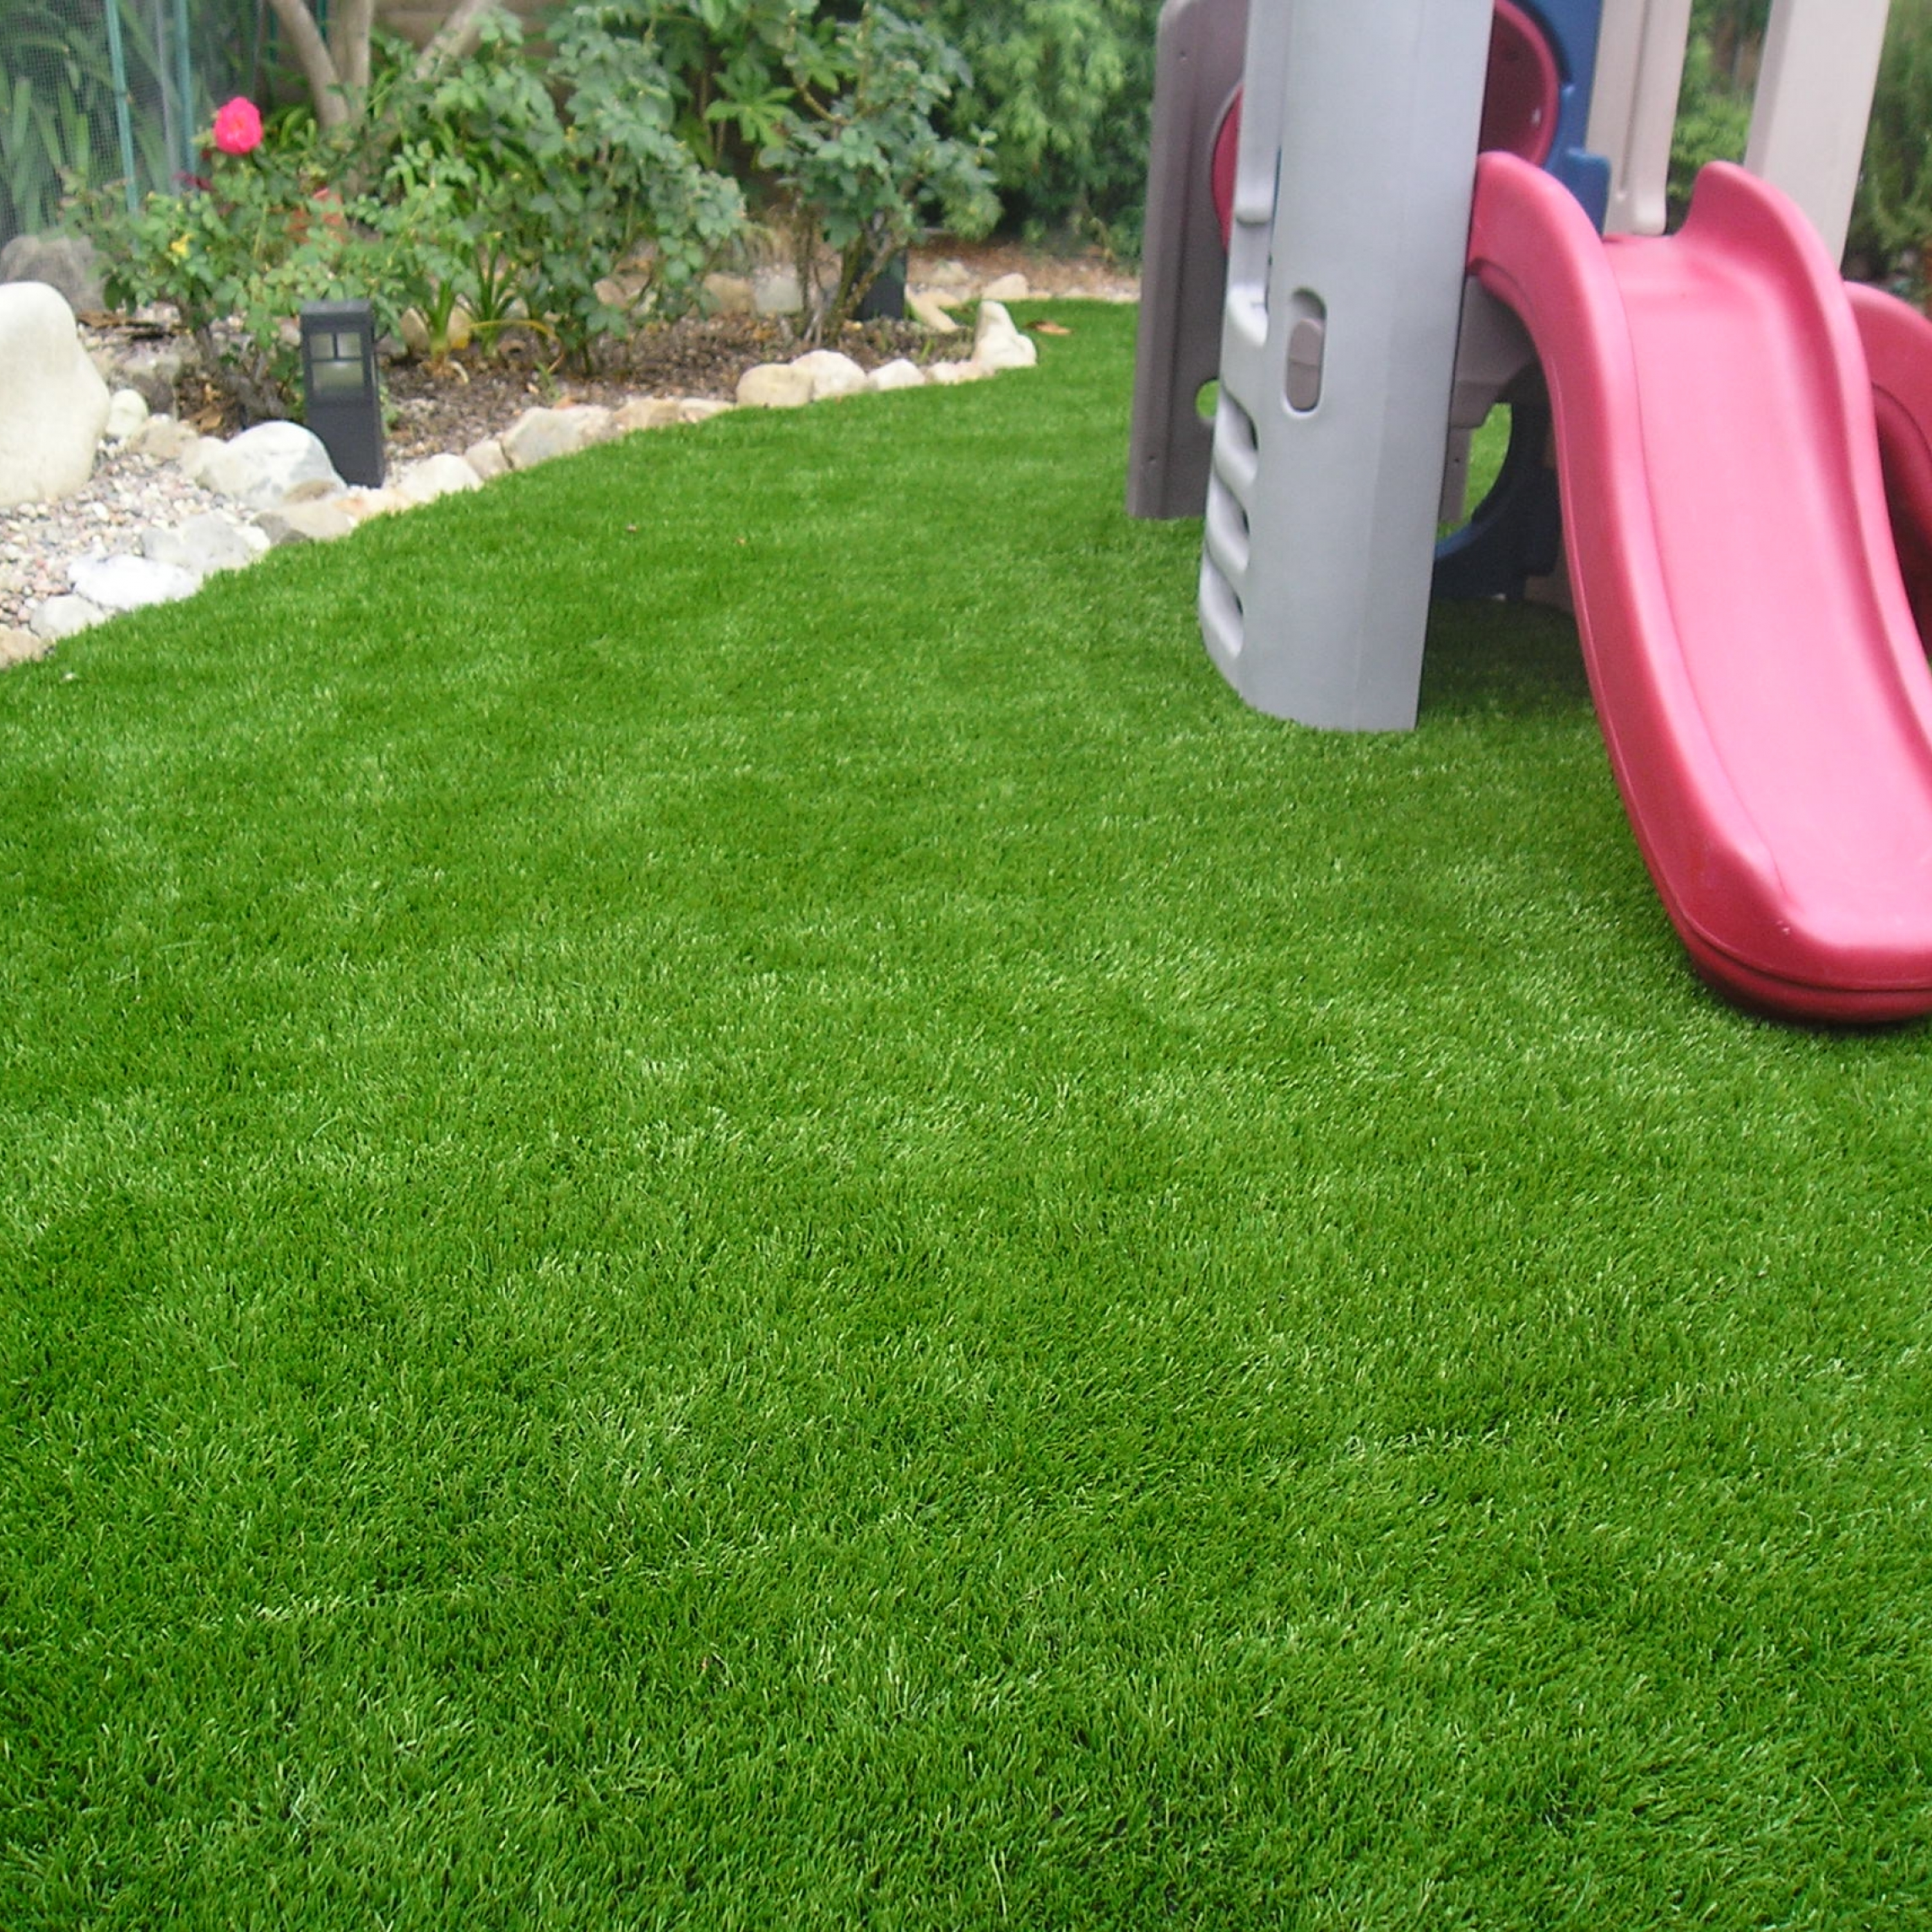 Cool Blue Hollow Olive playground turf,playground grass,playground foam padding,artificial turf for playgrounds,playground artificial turf,playground turf,outdoor turf,outdoor artificial turf,indoor outdoor turf,artificial turf for playgrounds,outdoor artificial grass,playground grass,outdoor grass,artificial grass for play area,artificial grass for playgrounds